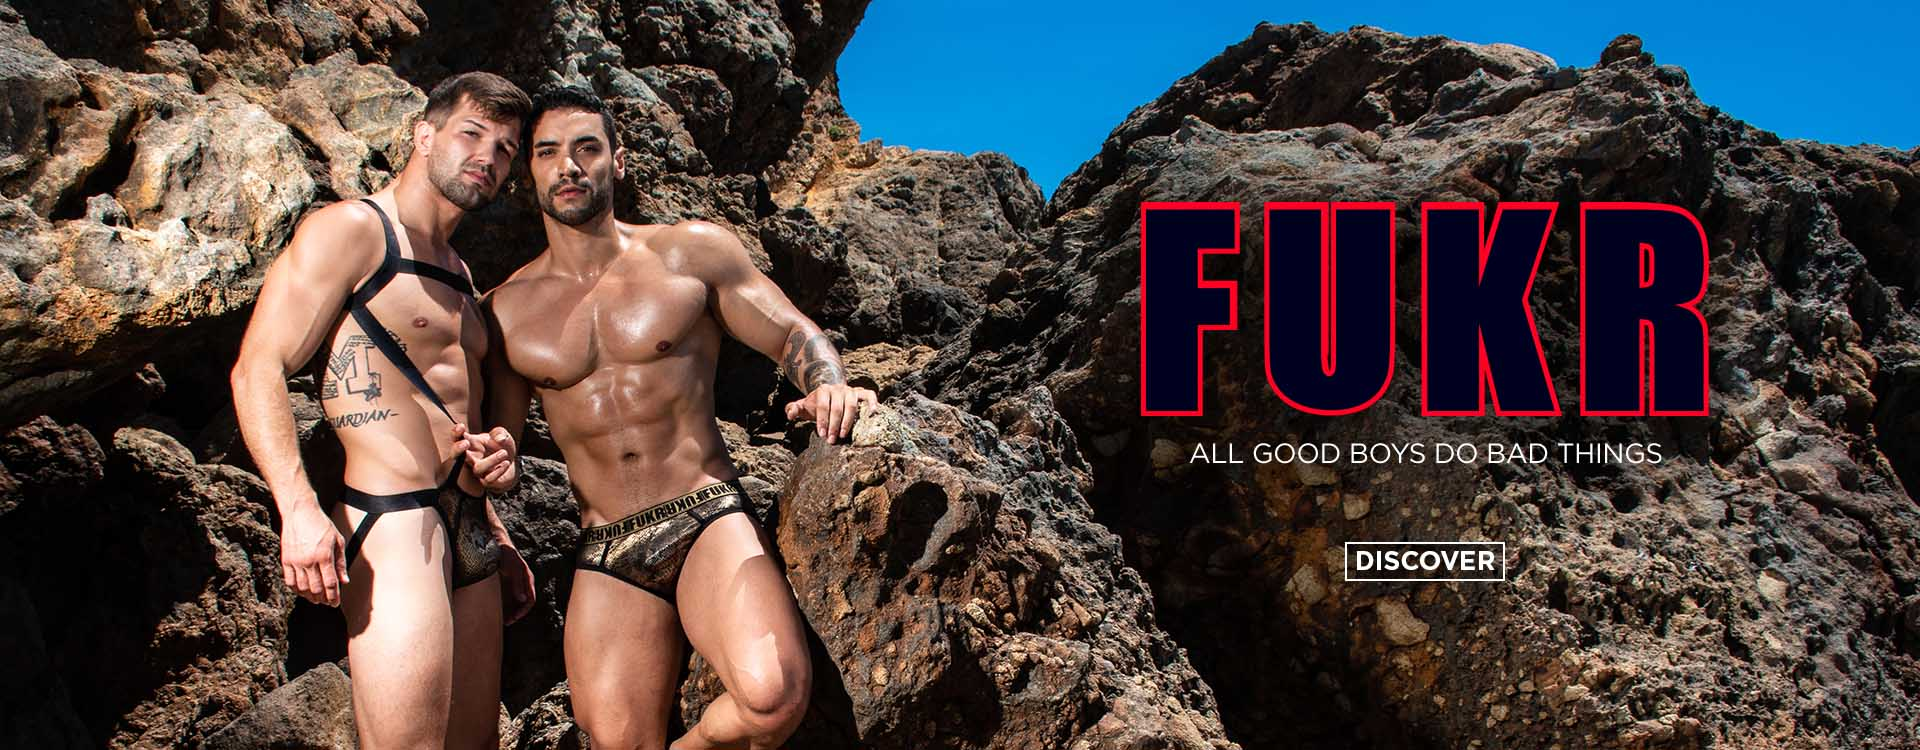 Andrew Christian Fukr Collection